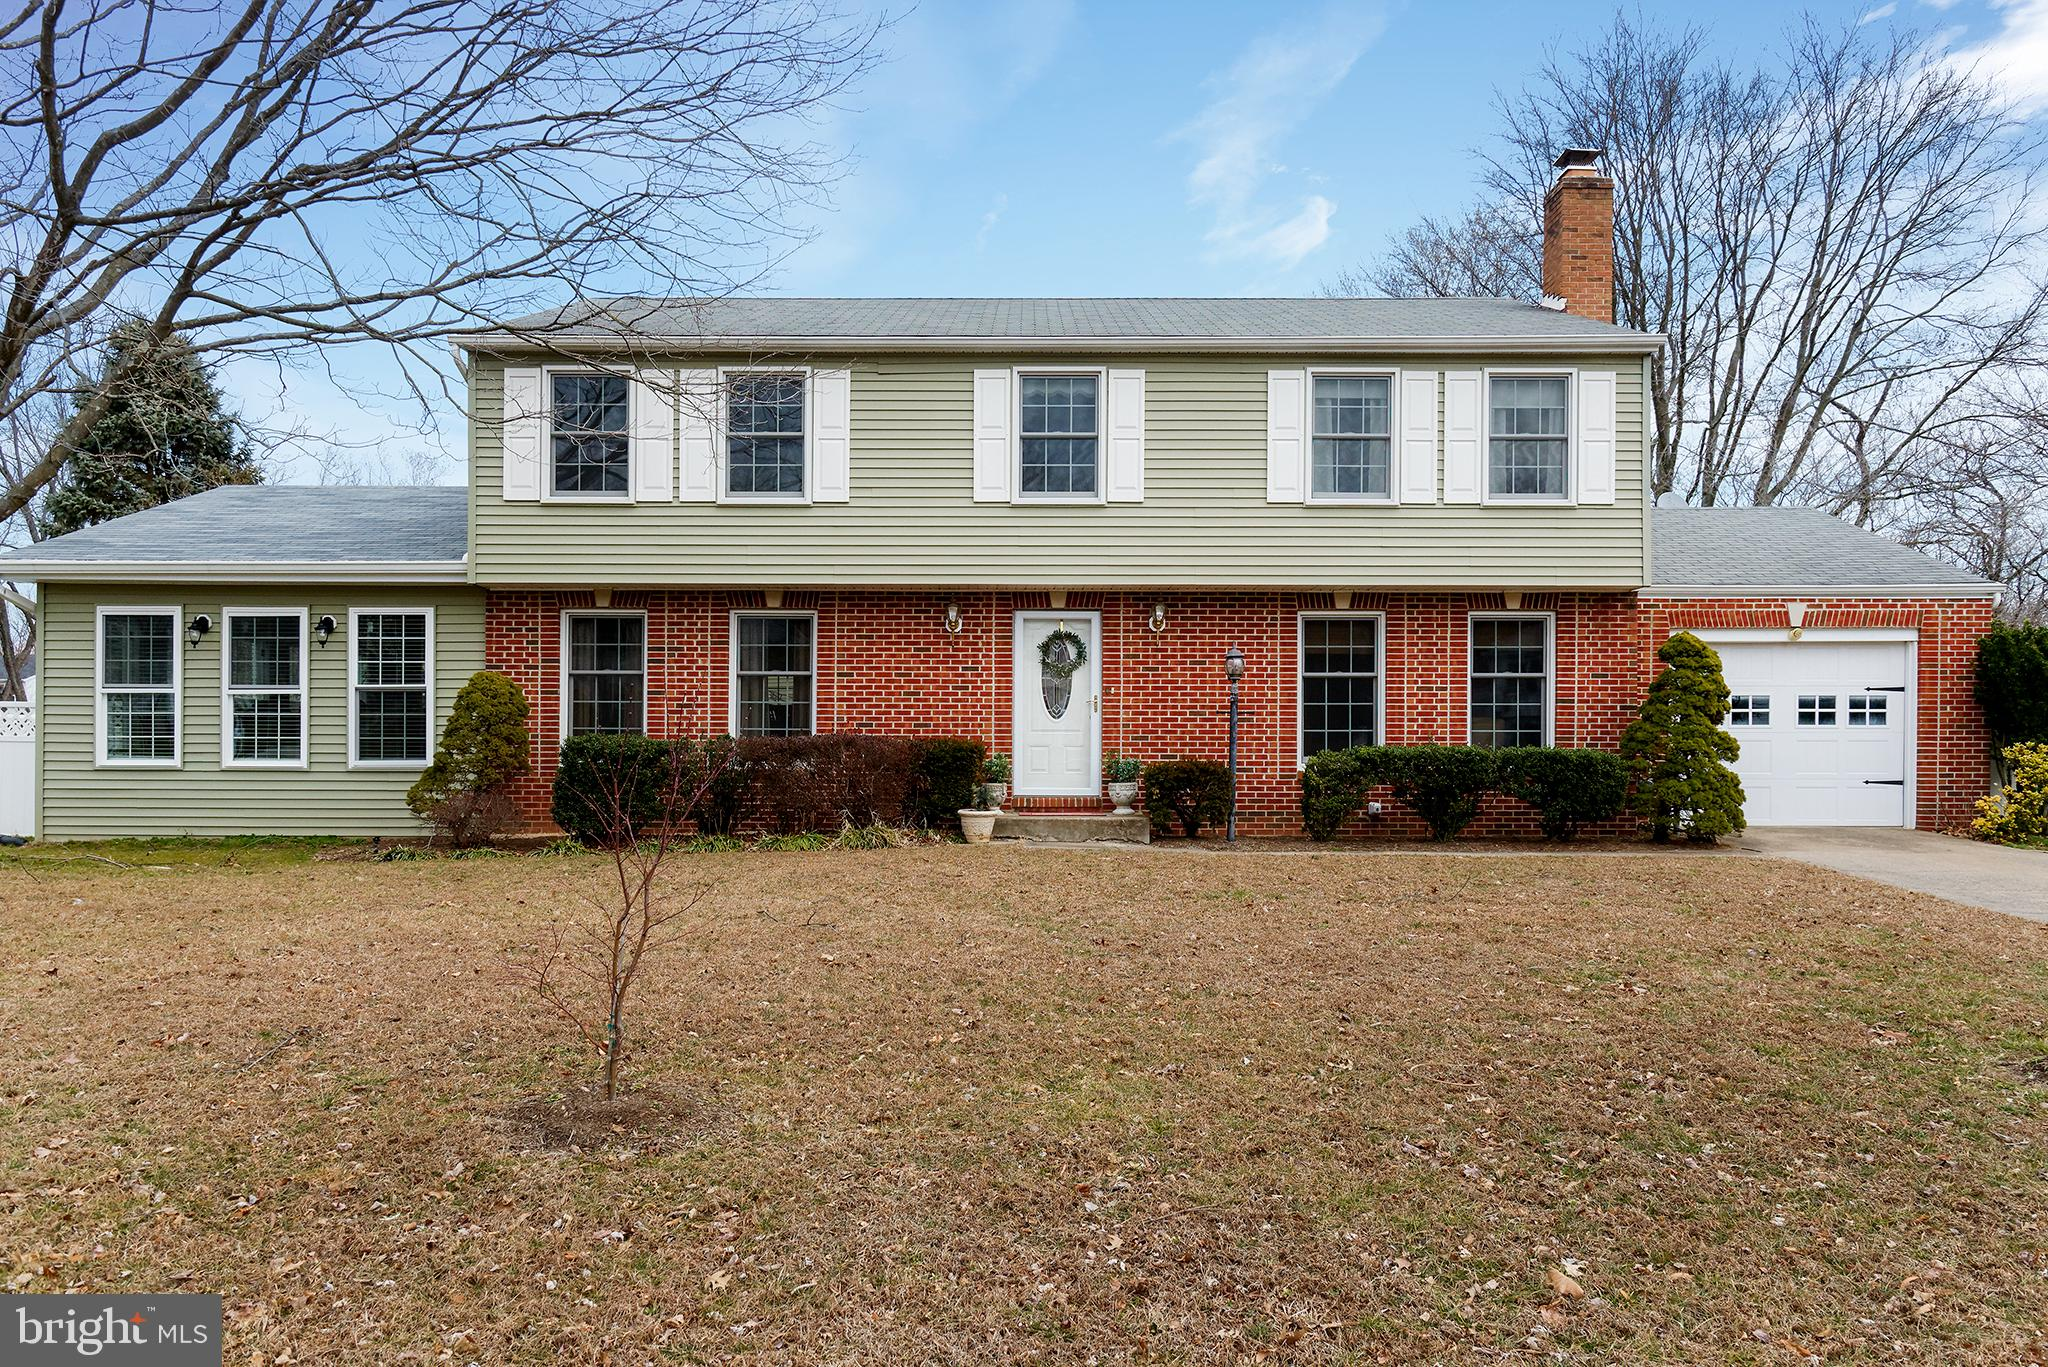 3295 BLUE HERON DRIVE, FALLS CHURCH, VA 22042